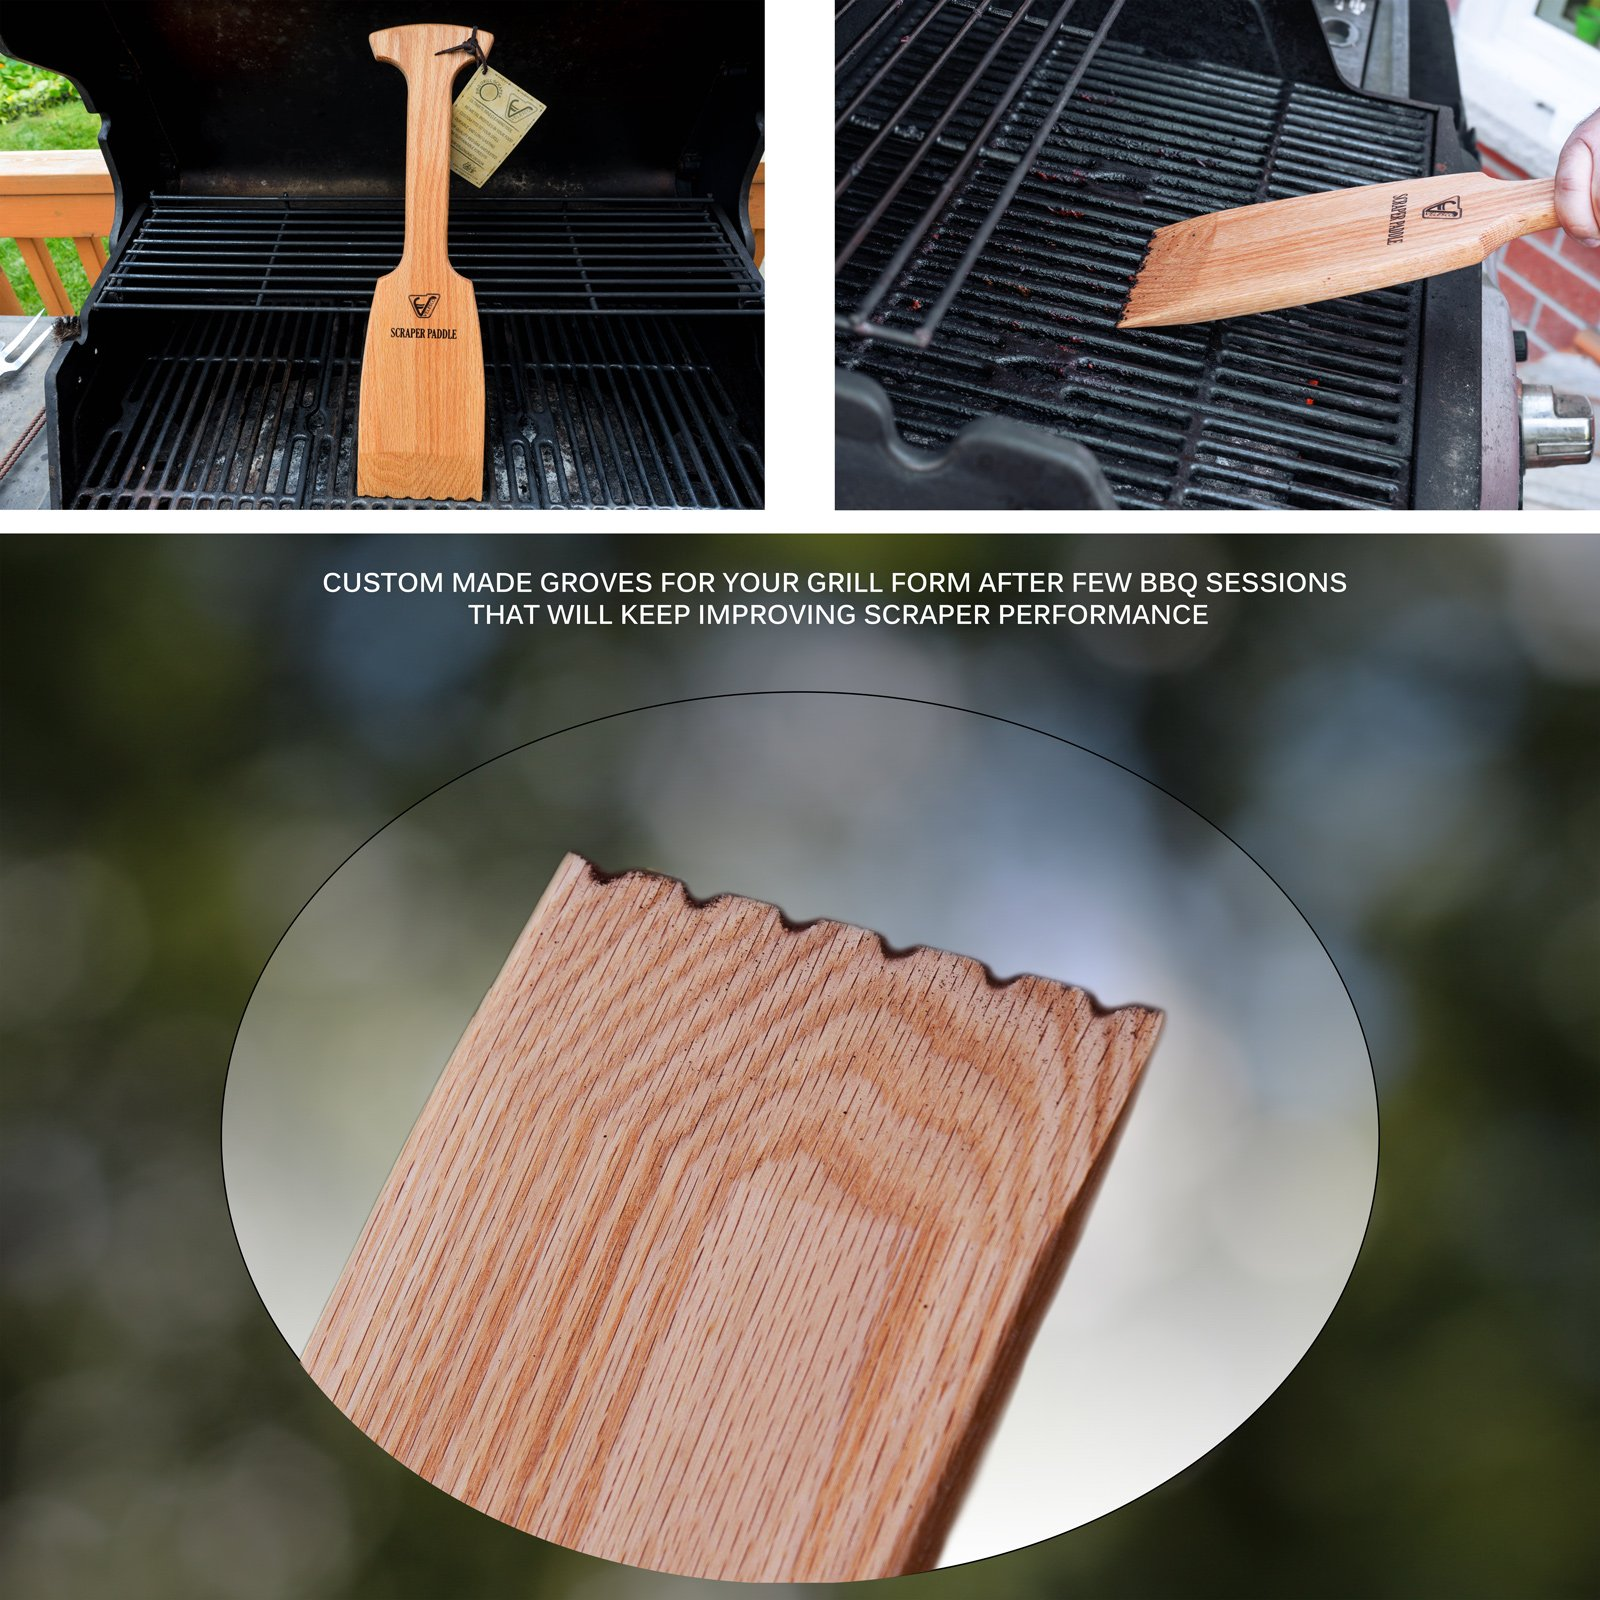 Velesco BBQ Wooden Grill Scraper Cleaner, American Red Oak Wood - Charcoal and Gas - Cleans top and between barbecue grates. Oil & clean grate. Sustainable and safe replacement for wire bristle brush by Velesco (Image #2)